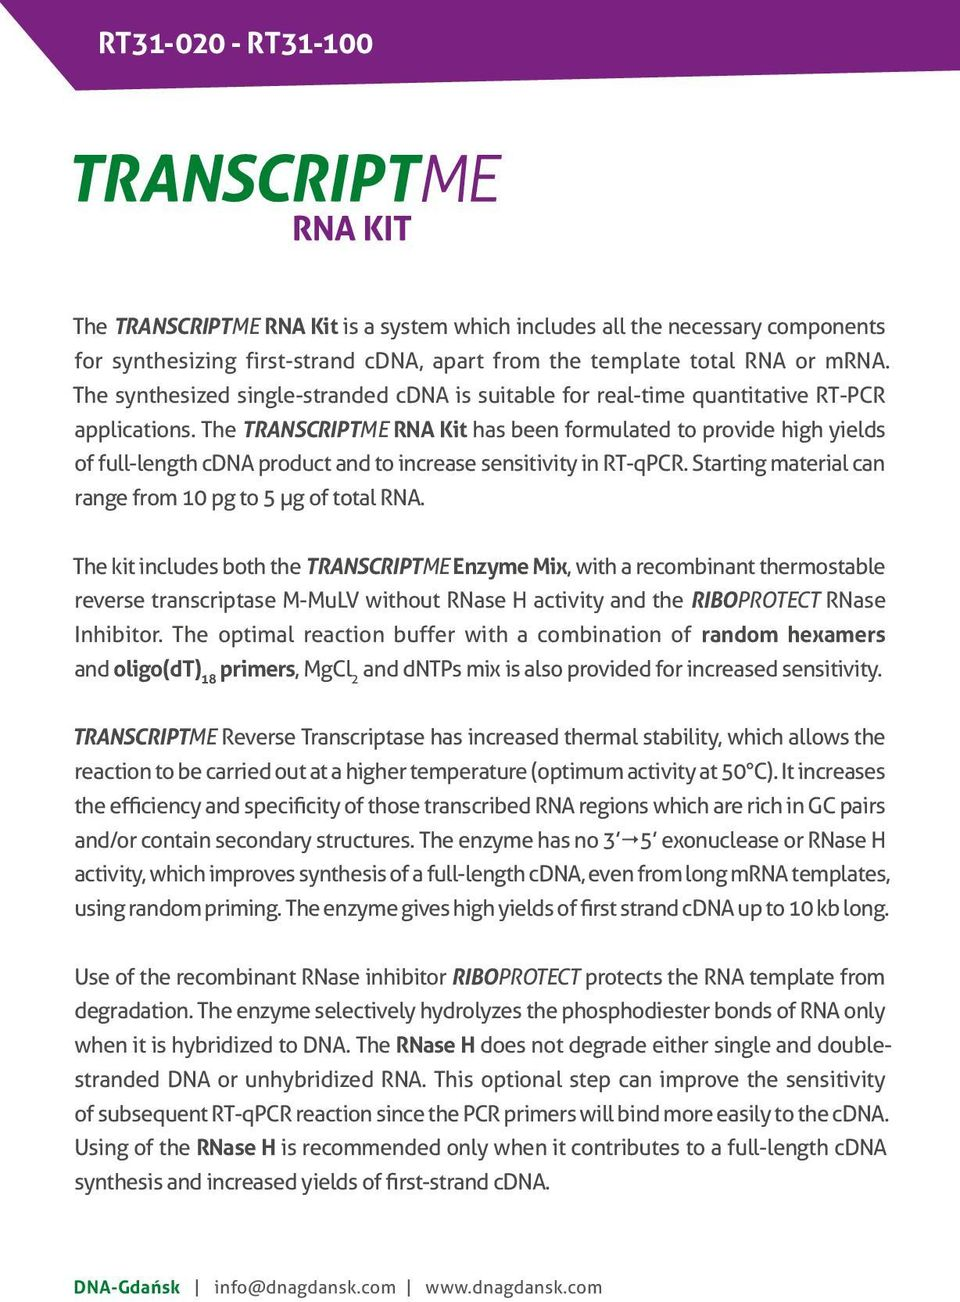 The TRANSCRIPTME RNA Kit has been formulated to provide high yields of full-length cdna product and to increase sensitivity in RT-qPCR. Starting material can range from 10 pg to 5 μg of total RNA.